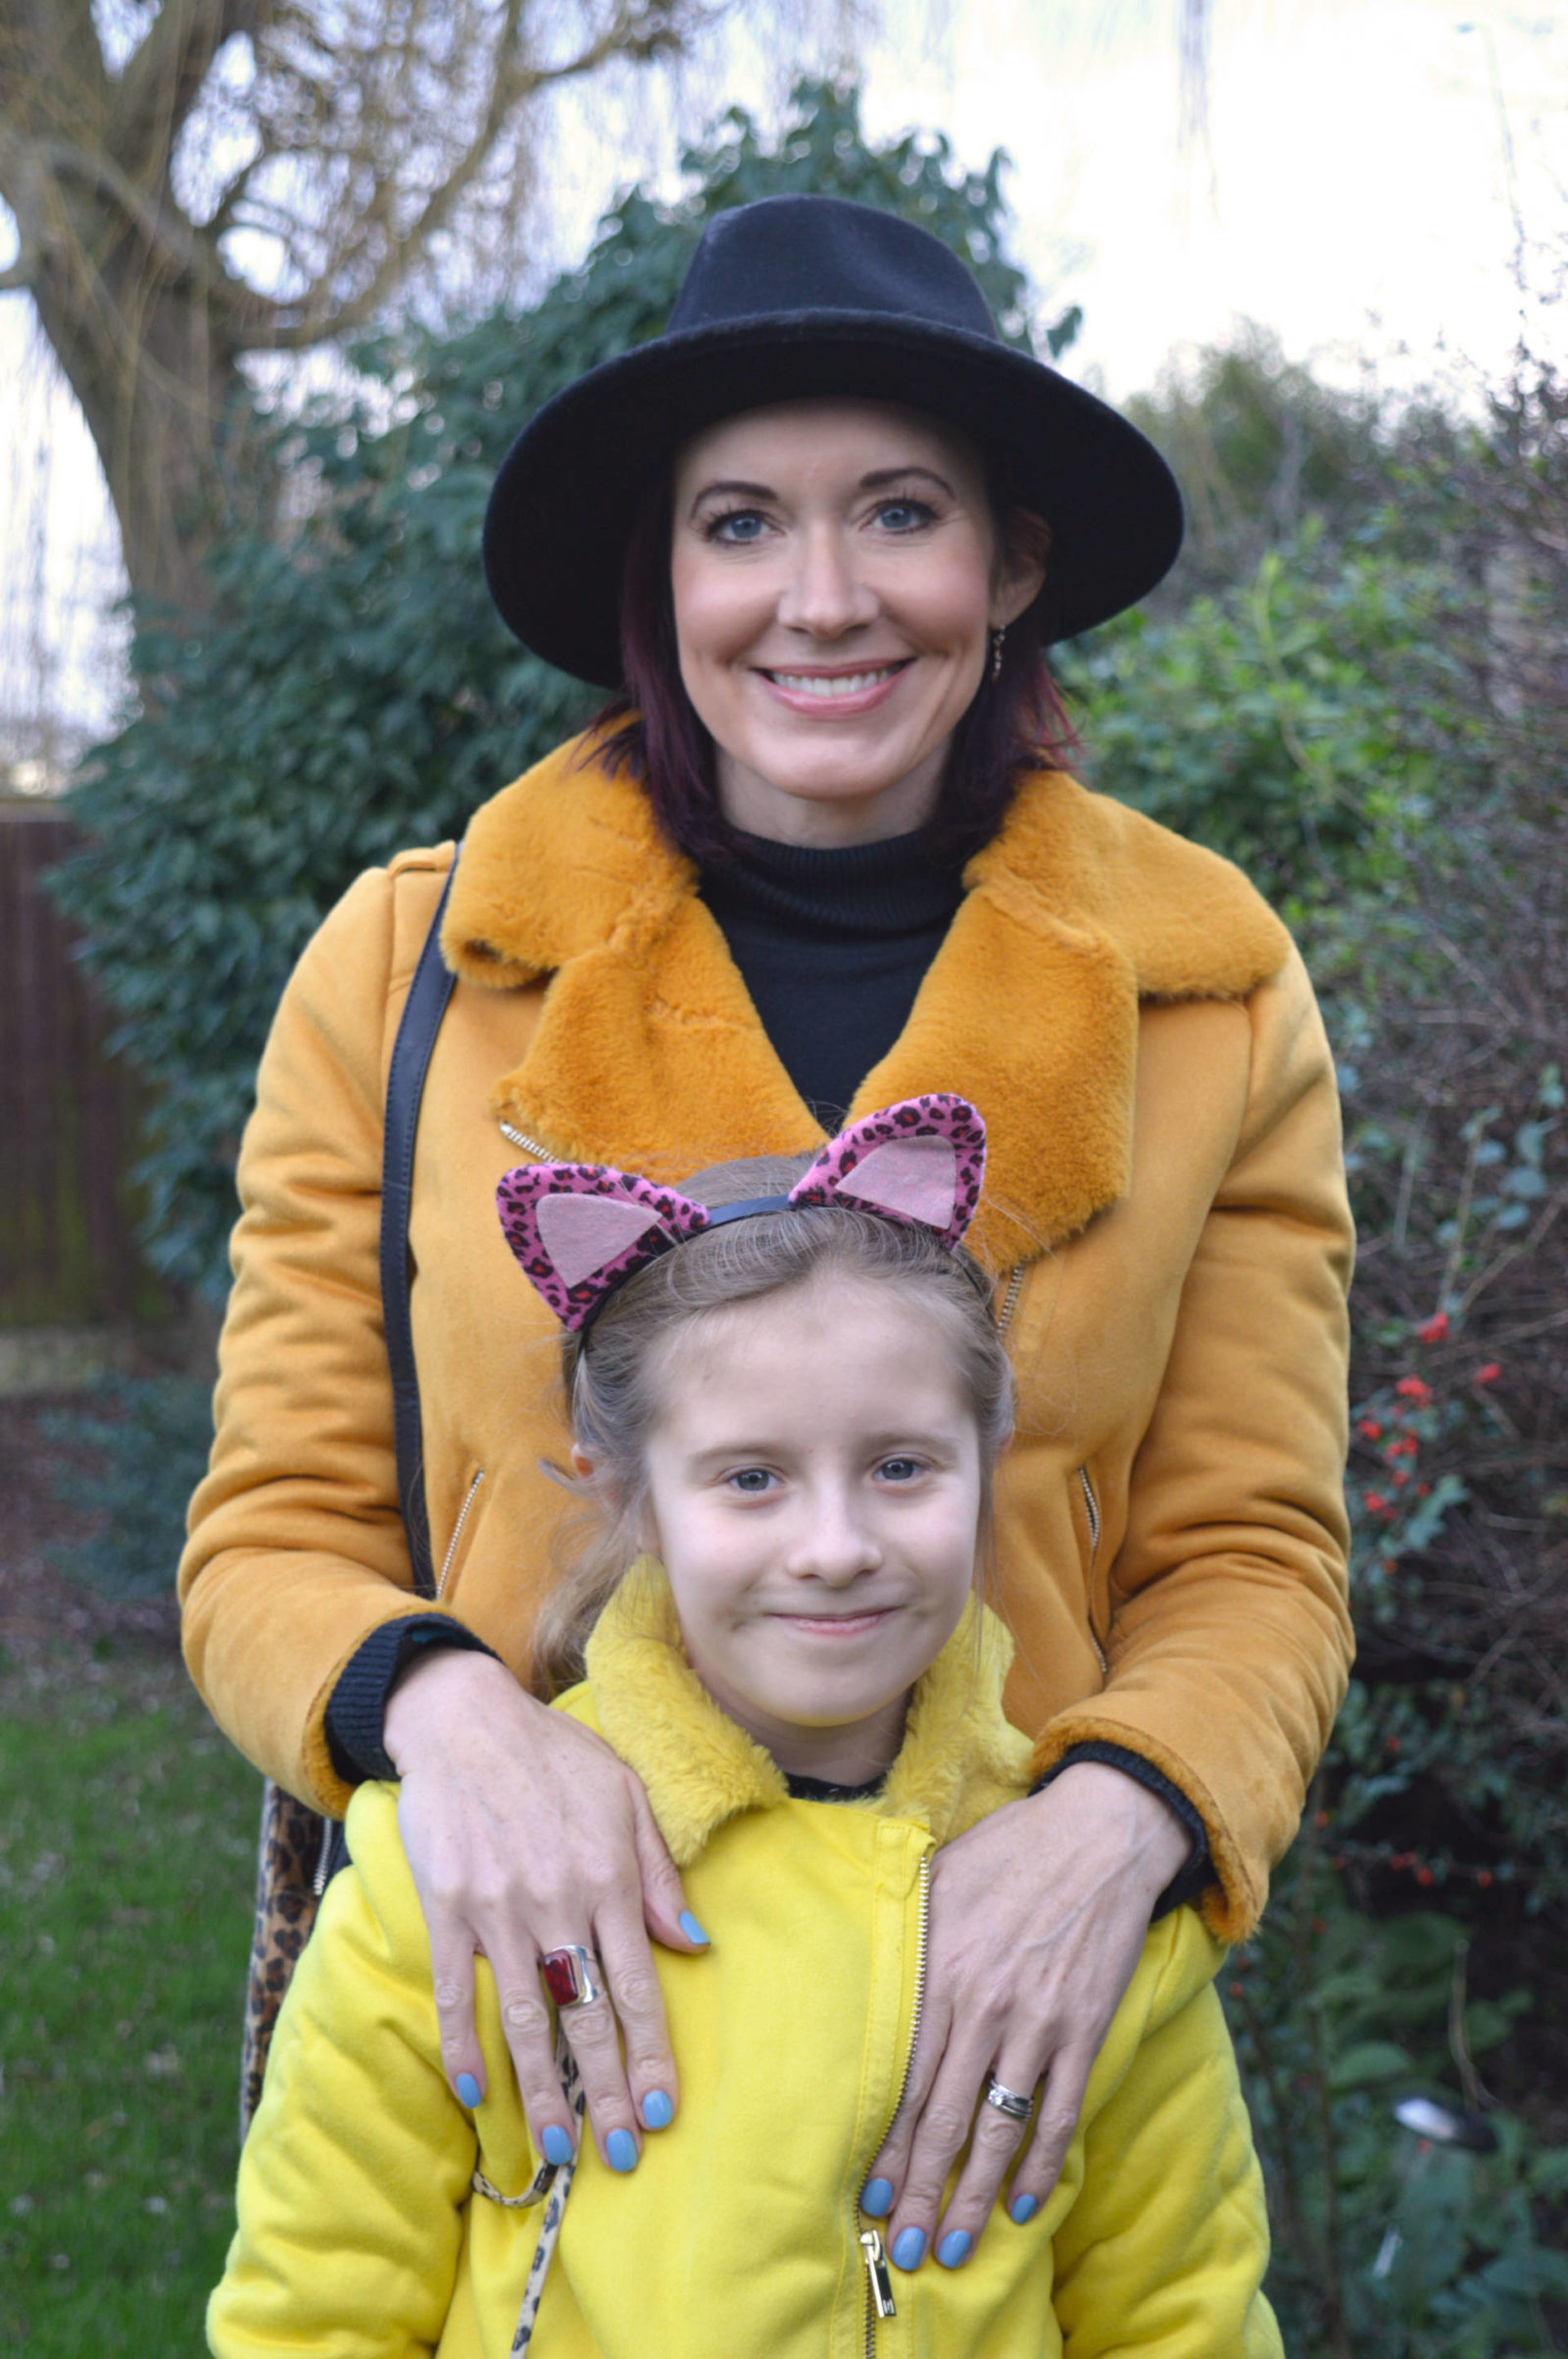 Matching yellow jackets, glitter trousers and biker boots